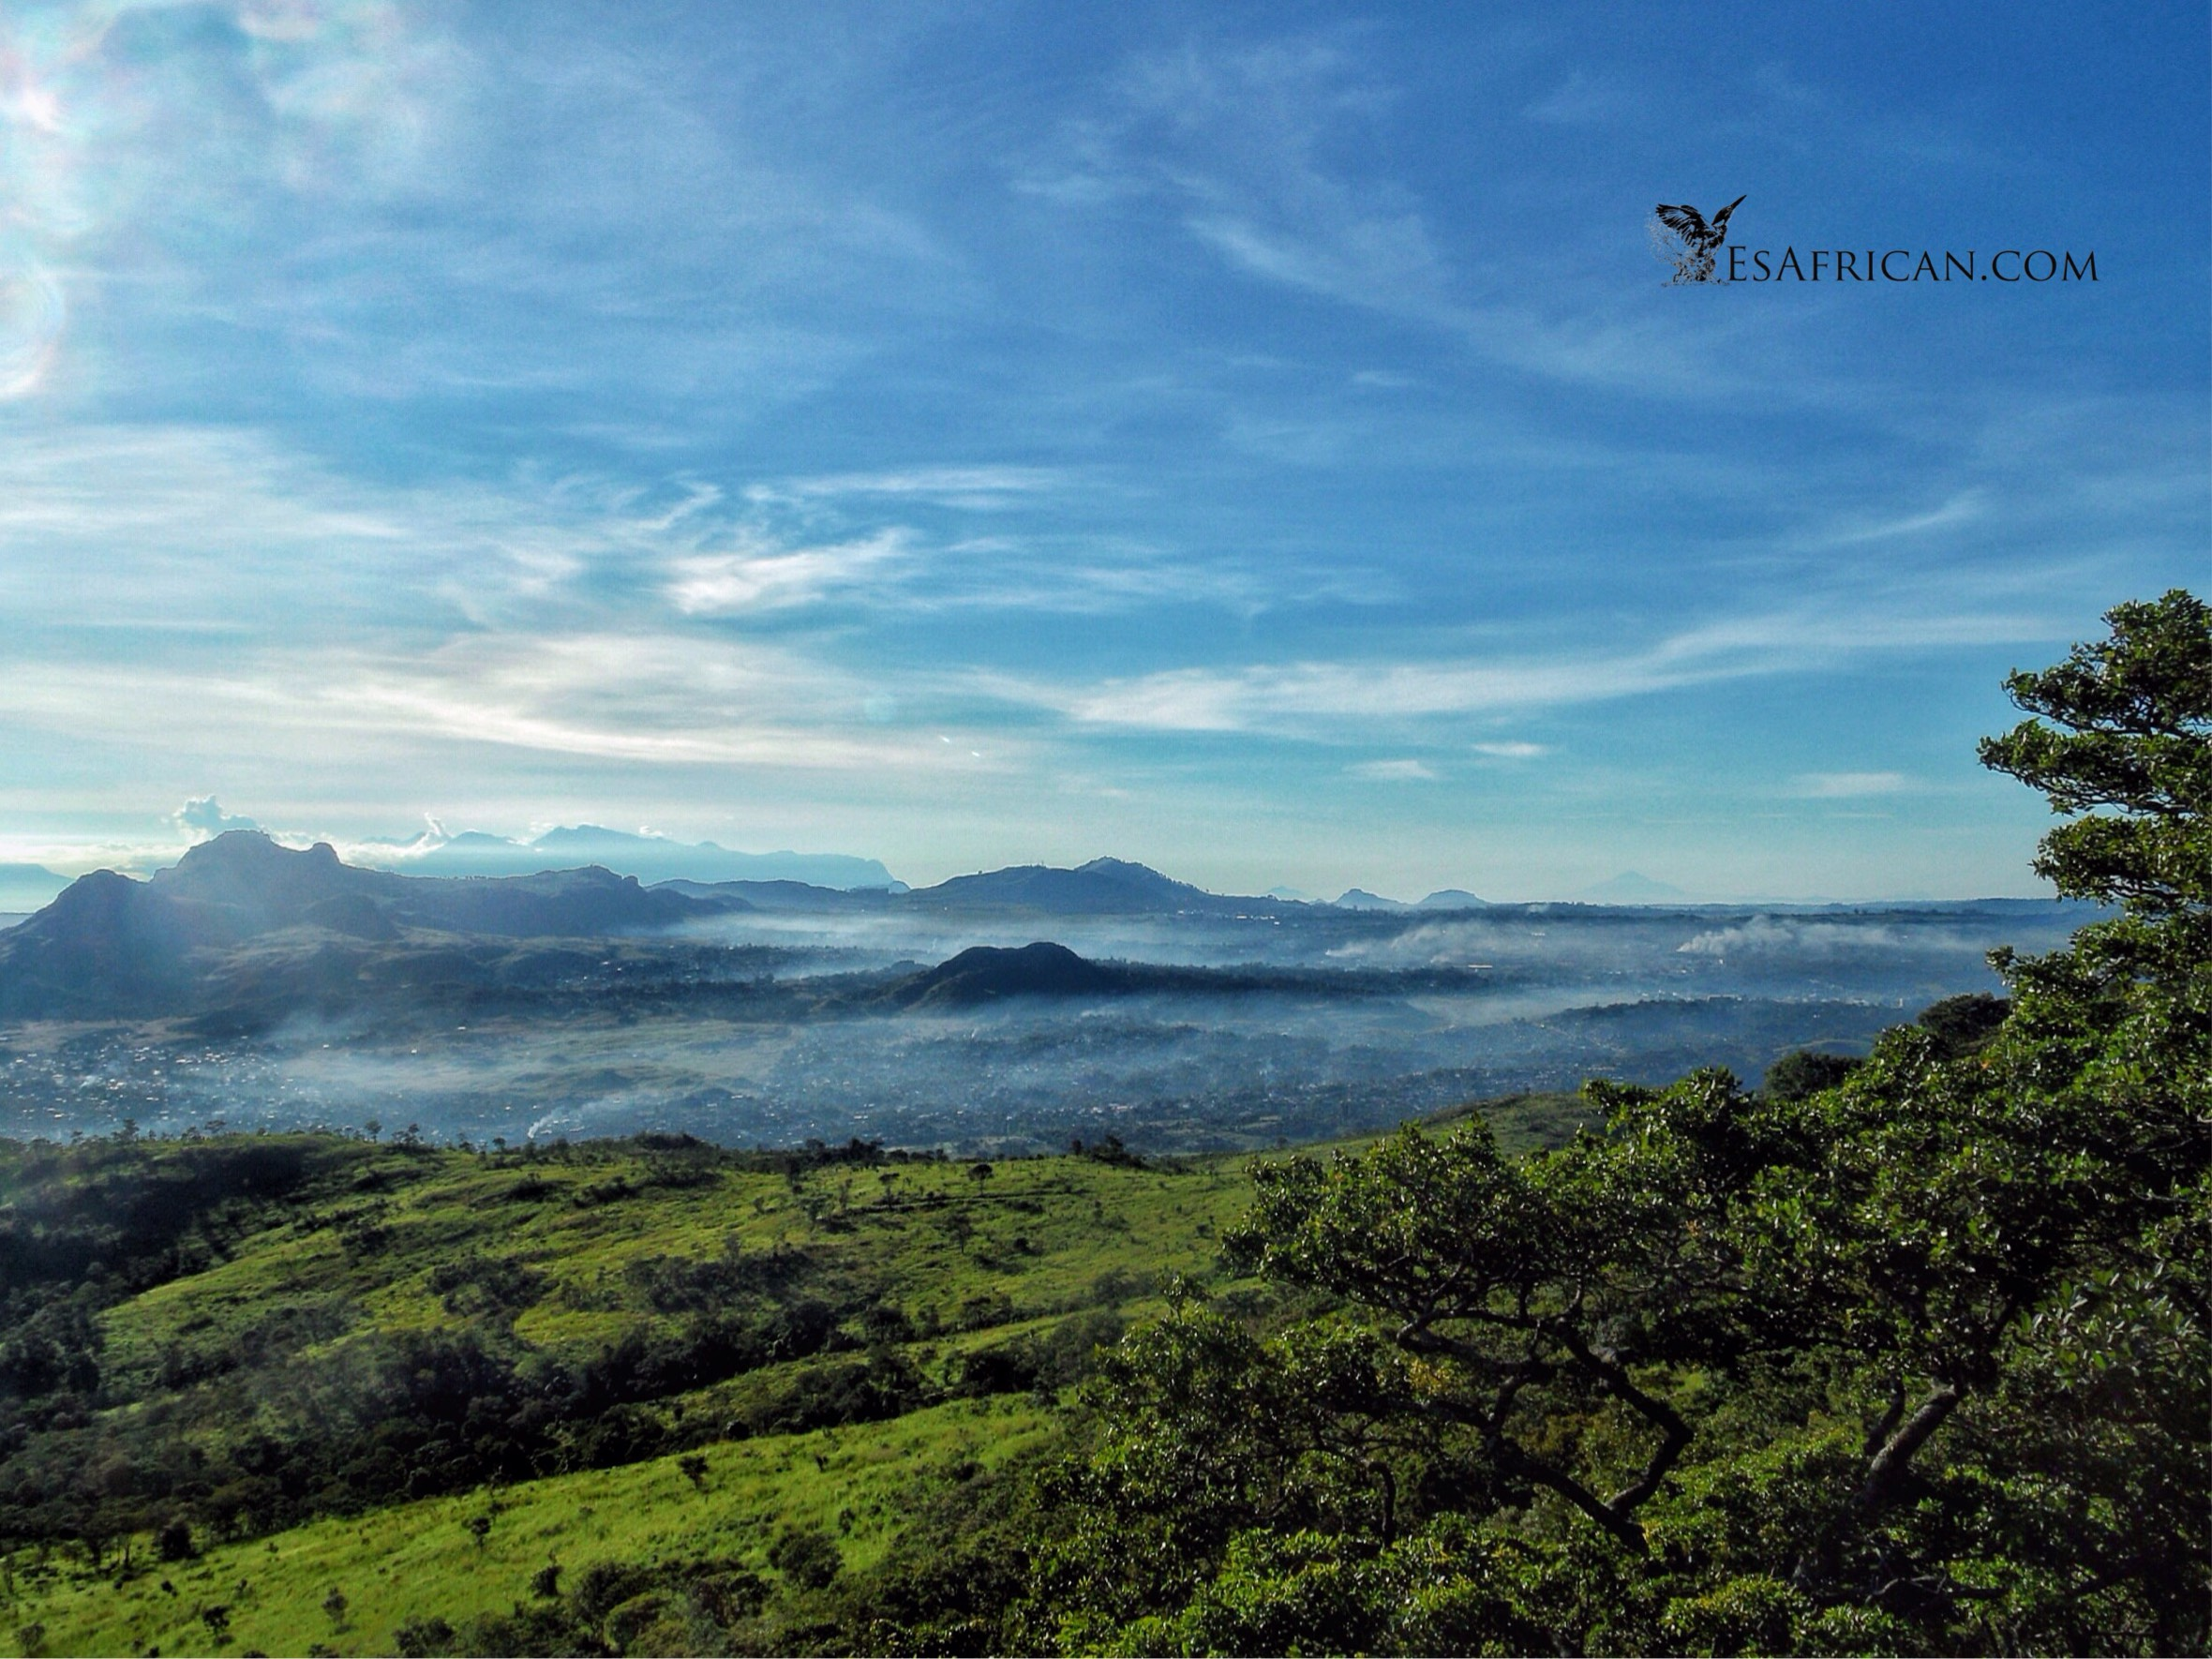 The early morning mist over lantyre from Michitu Mountain. The beginning of yet another stunningly beautiful and pleasantly warm day.